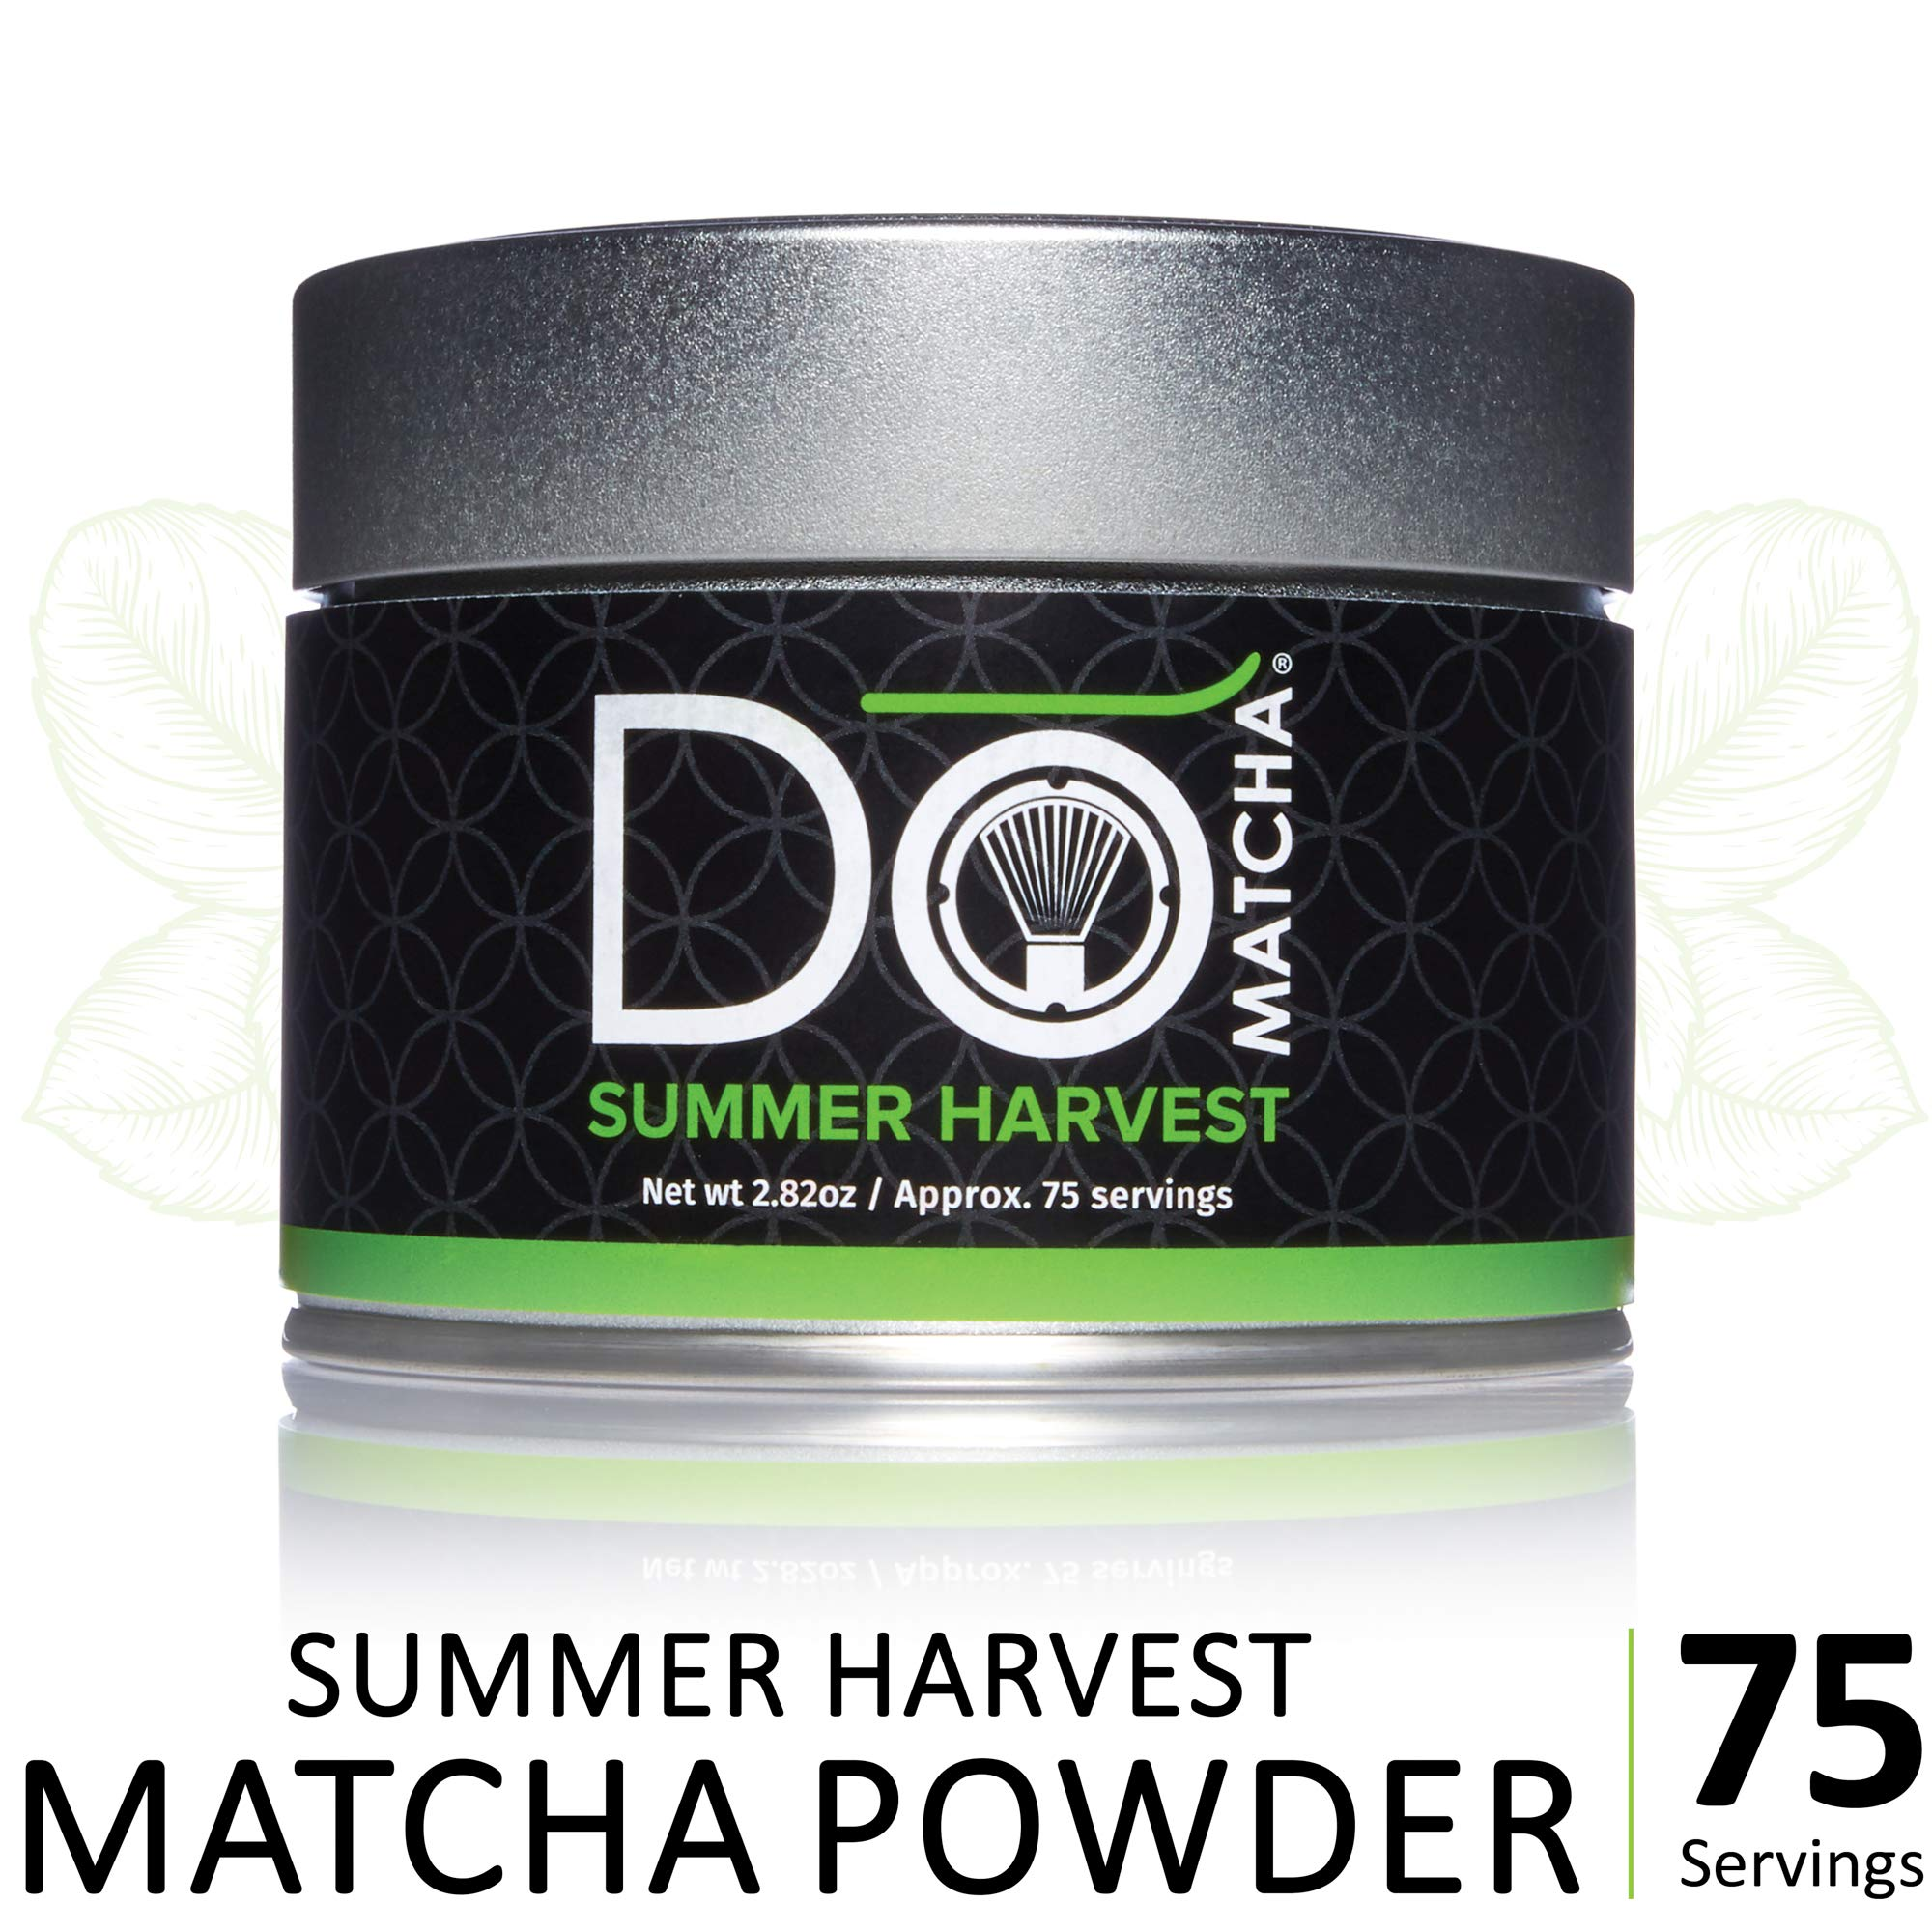 DoMatcha - Summer Harvest Green Tea Matcha Powder, Natural Source of Antioxidants, Caffeine, and L-Theanine, Promotes Focus and Relaxation, 75 Servings (2.82 oz) by DoMatcha